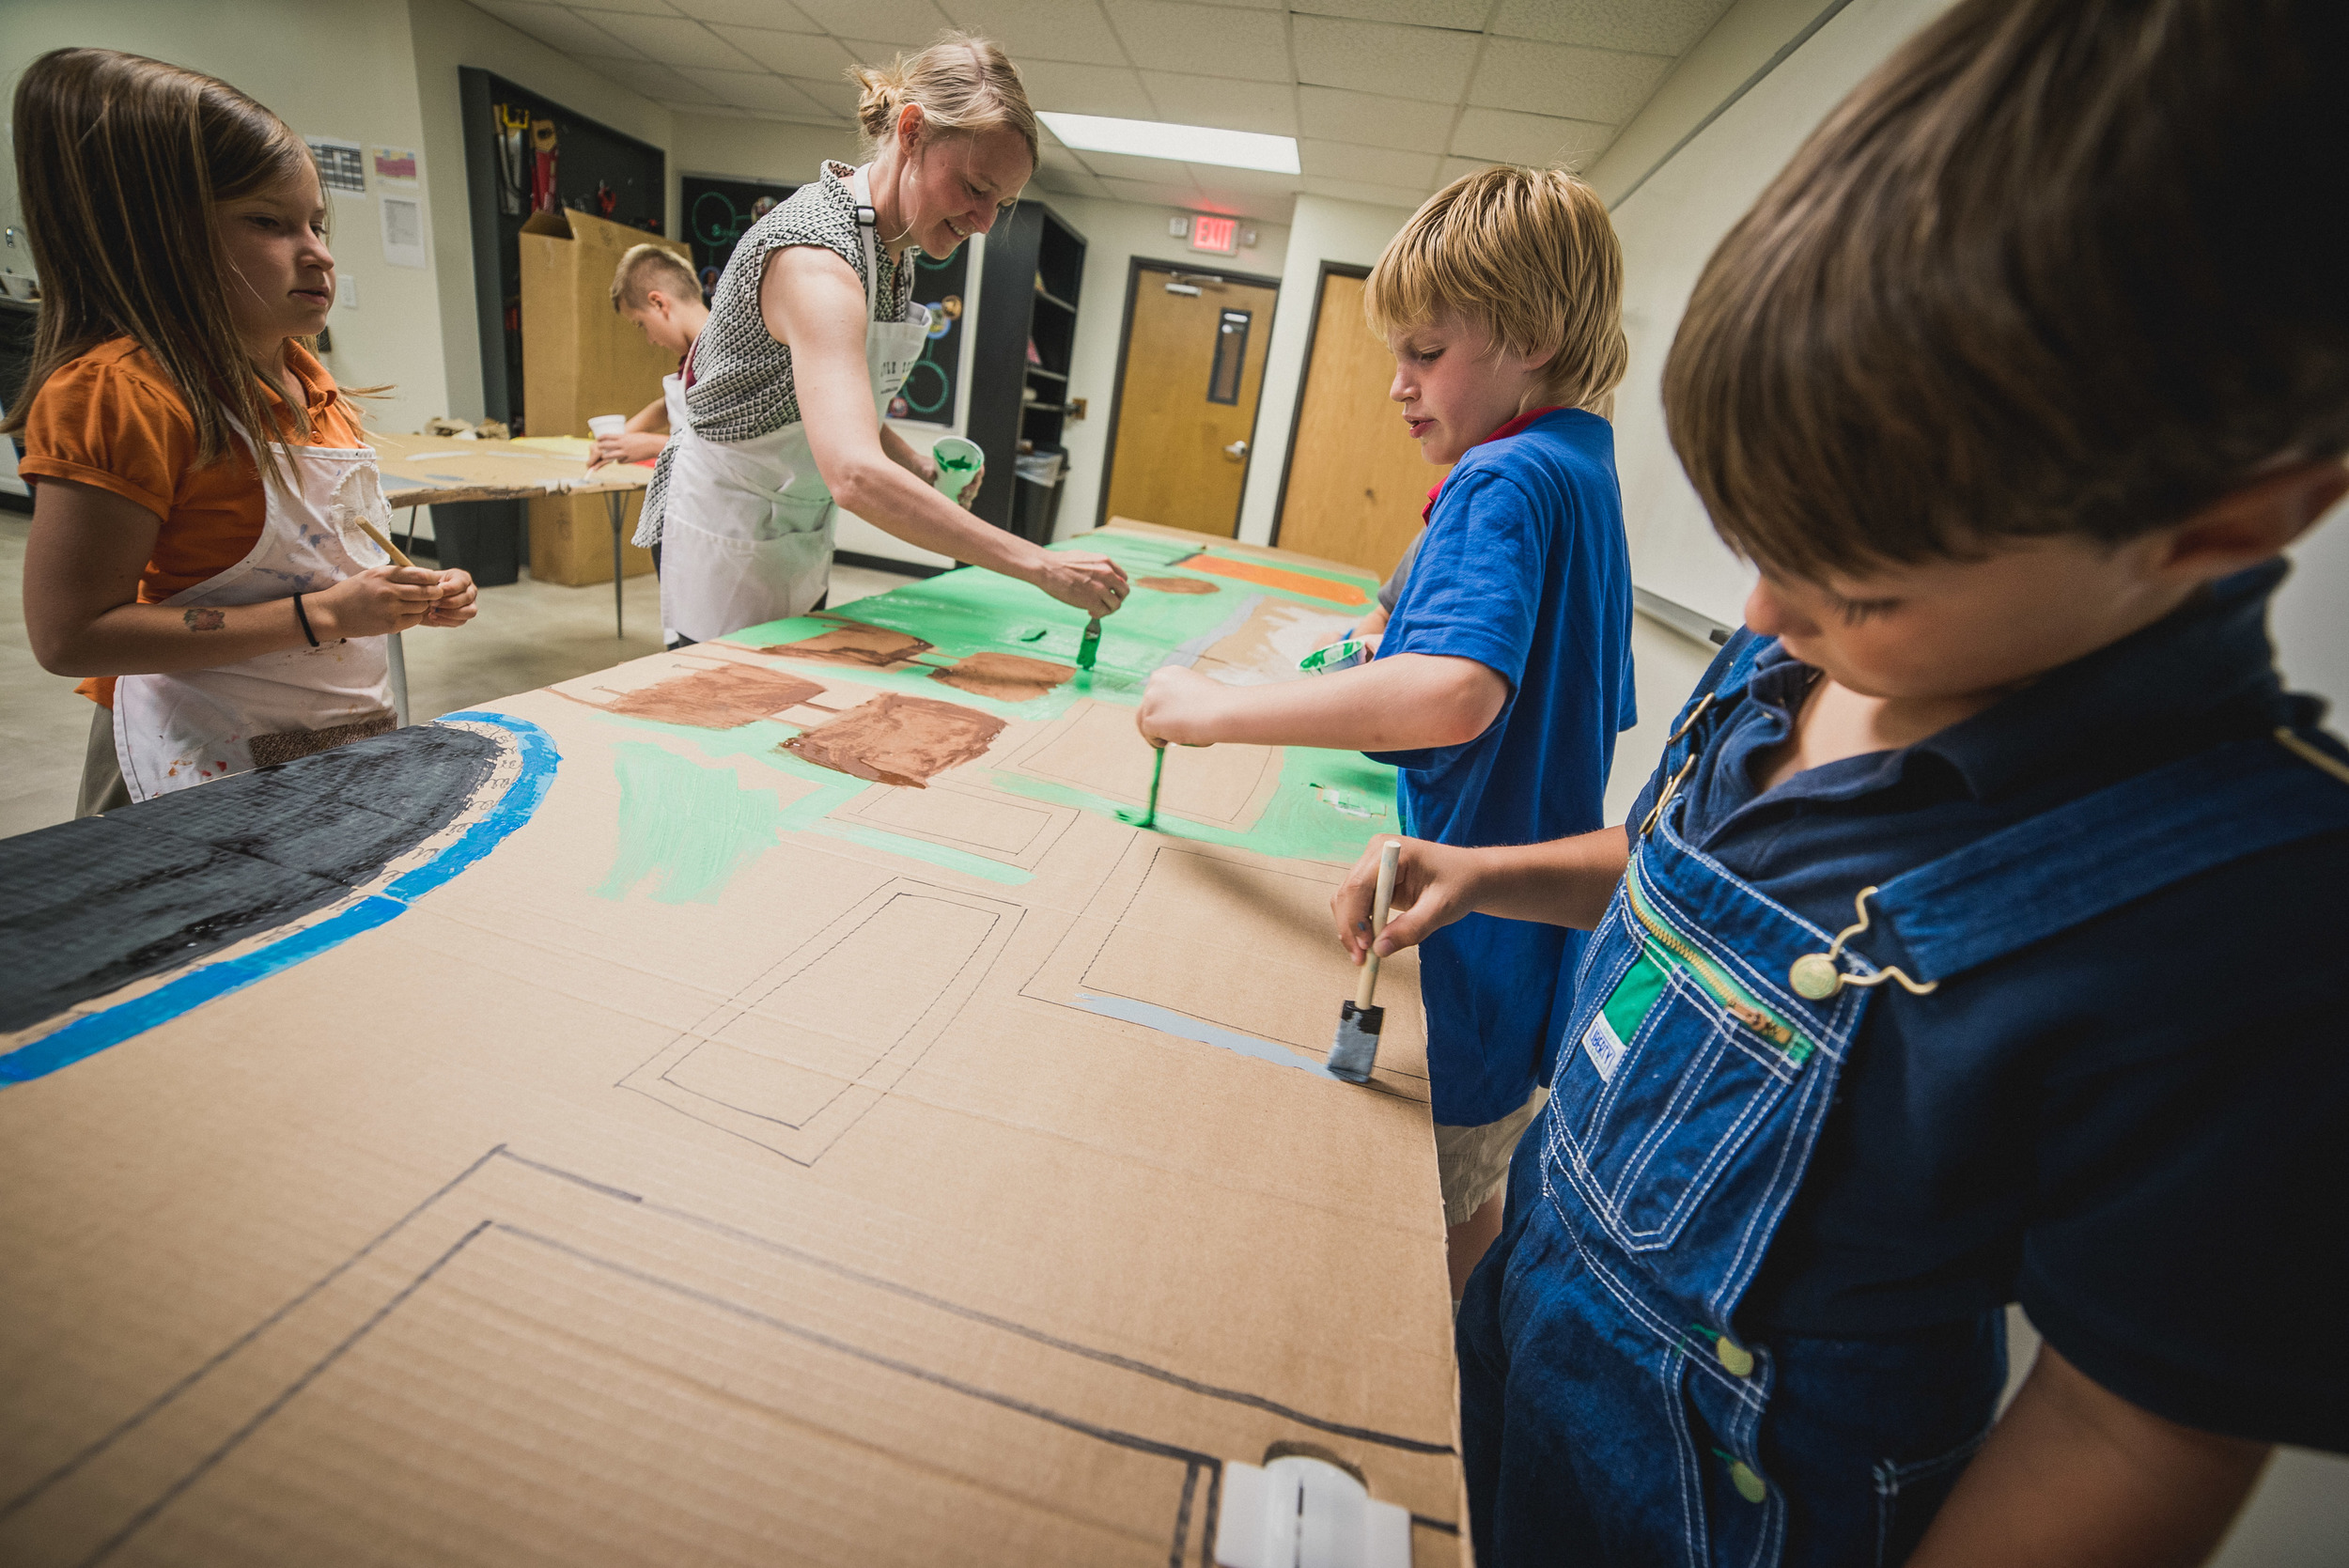 At the Academy for G.O.D., Miss Foster teaches our General B students, always bringing her hands-on and artistic talents into the learning environment.